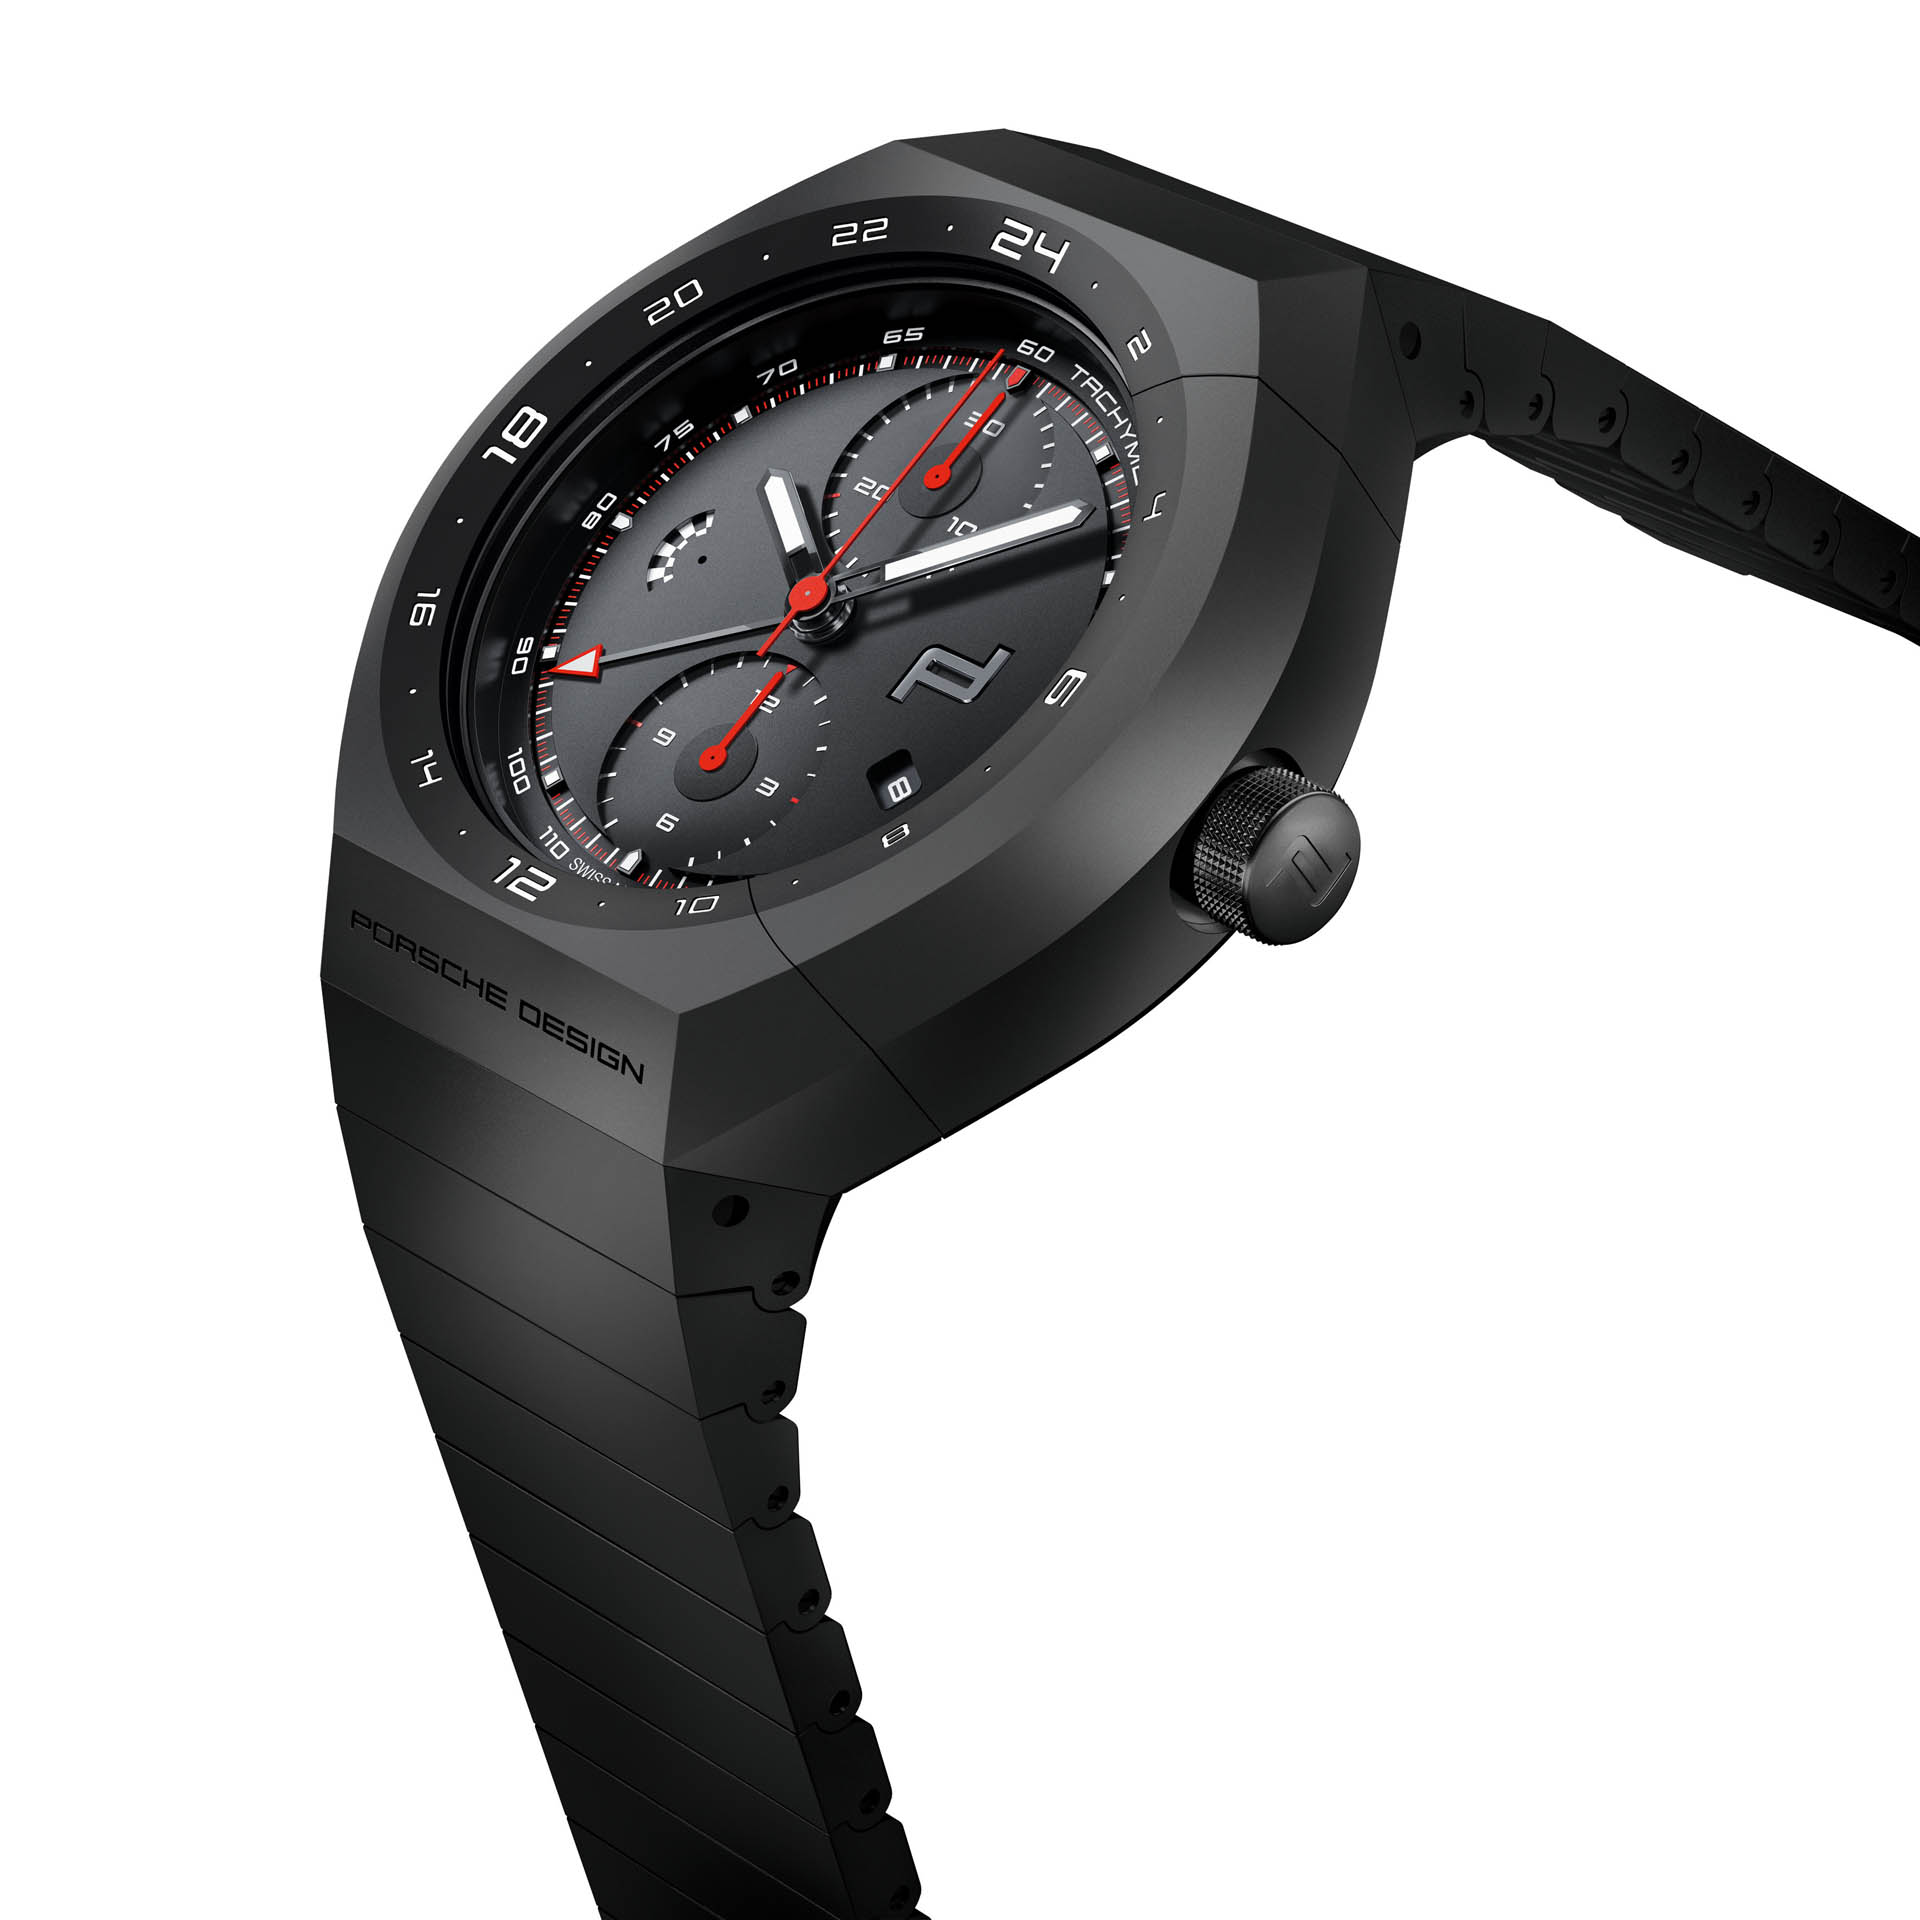 monobloc_actuator_24h_chronotimer-all-black_4-copy